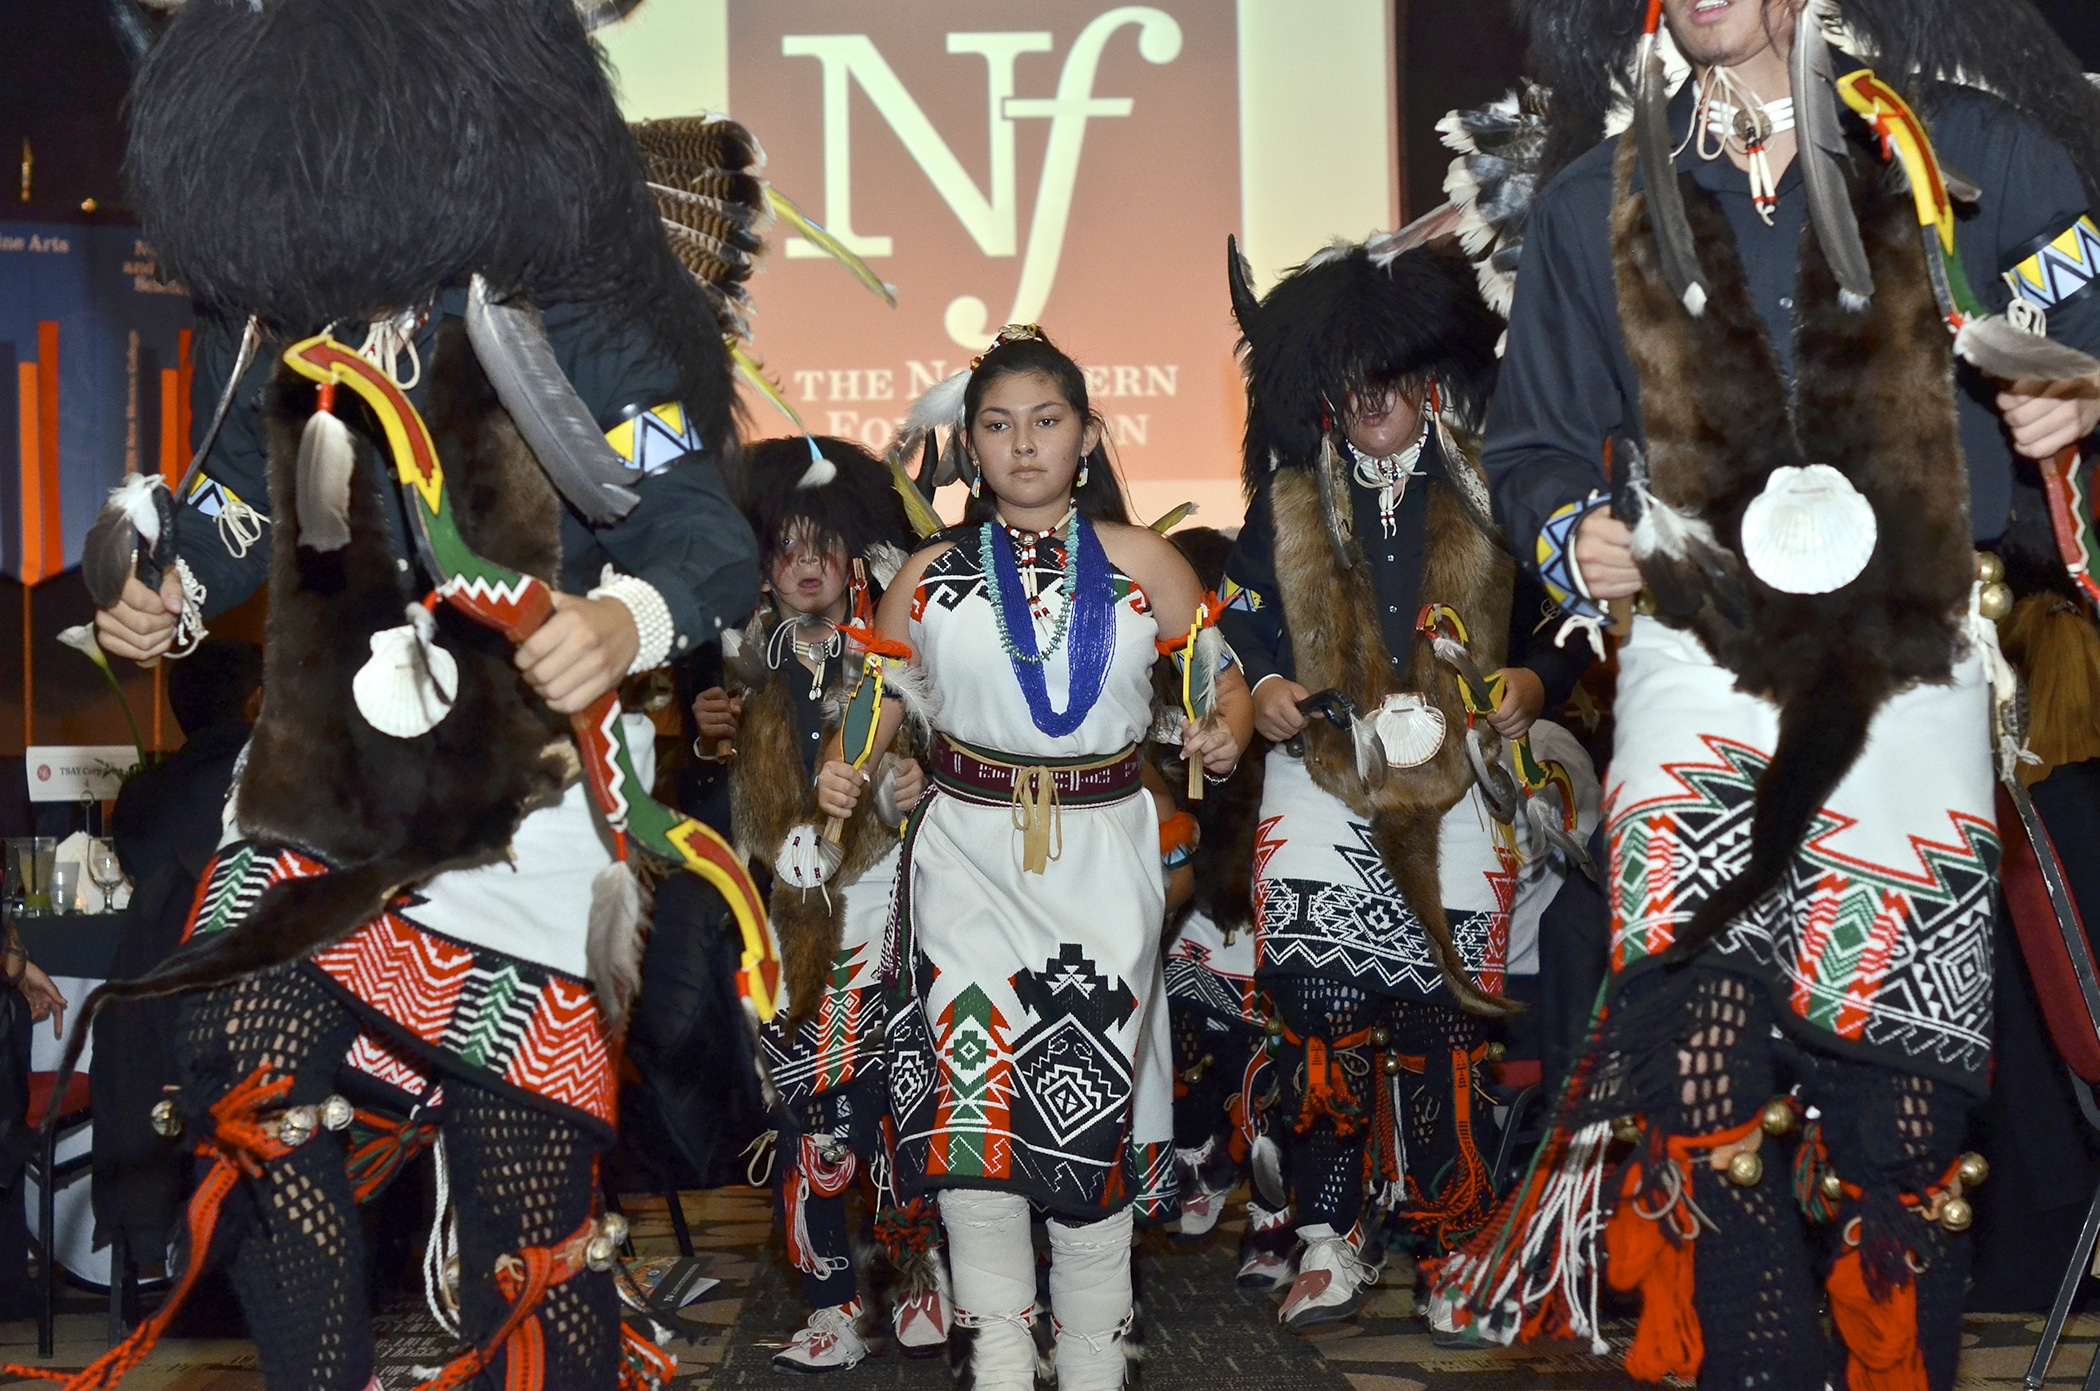 ice-mountain-dancers-at-northern-foundation-gala